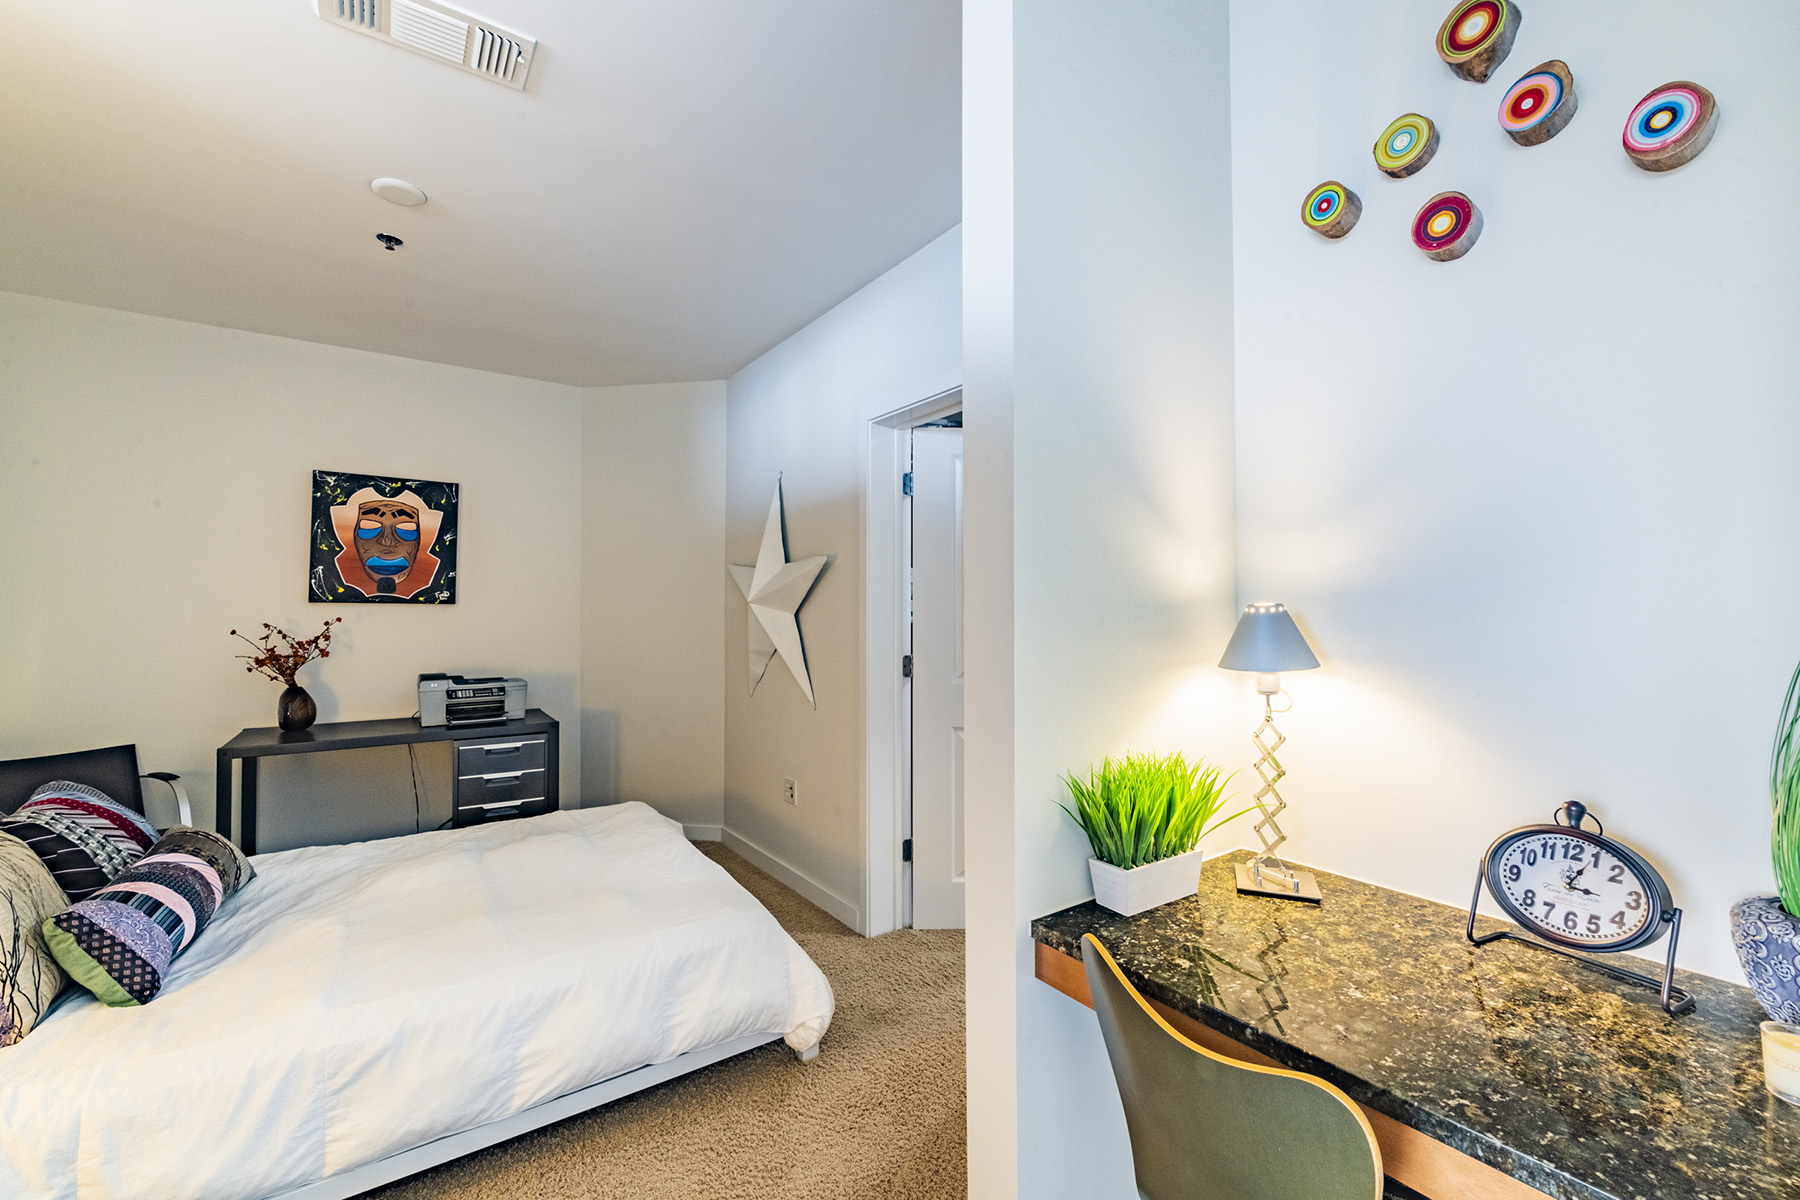 Additional photo for property listing at Live Above The Rest In A Quaint One Bedroom On The 27th Floor With Amazing views 855 Peachtree Street No. 2704, Atlanta, Georgia 30308 Estados Unidos